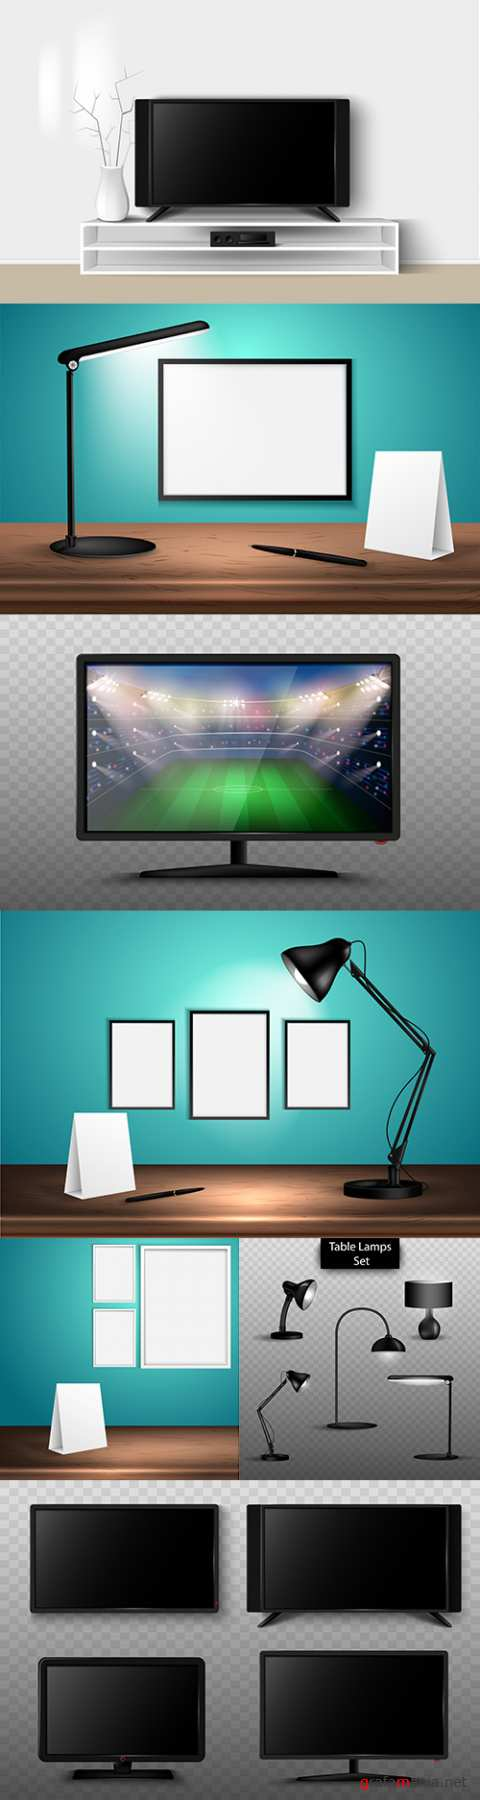 Table lamp and TV on wooden table 3d illustrations